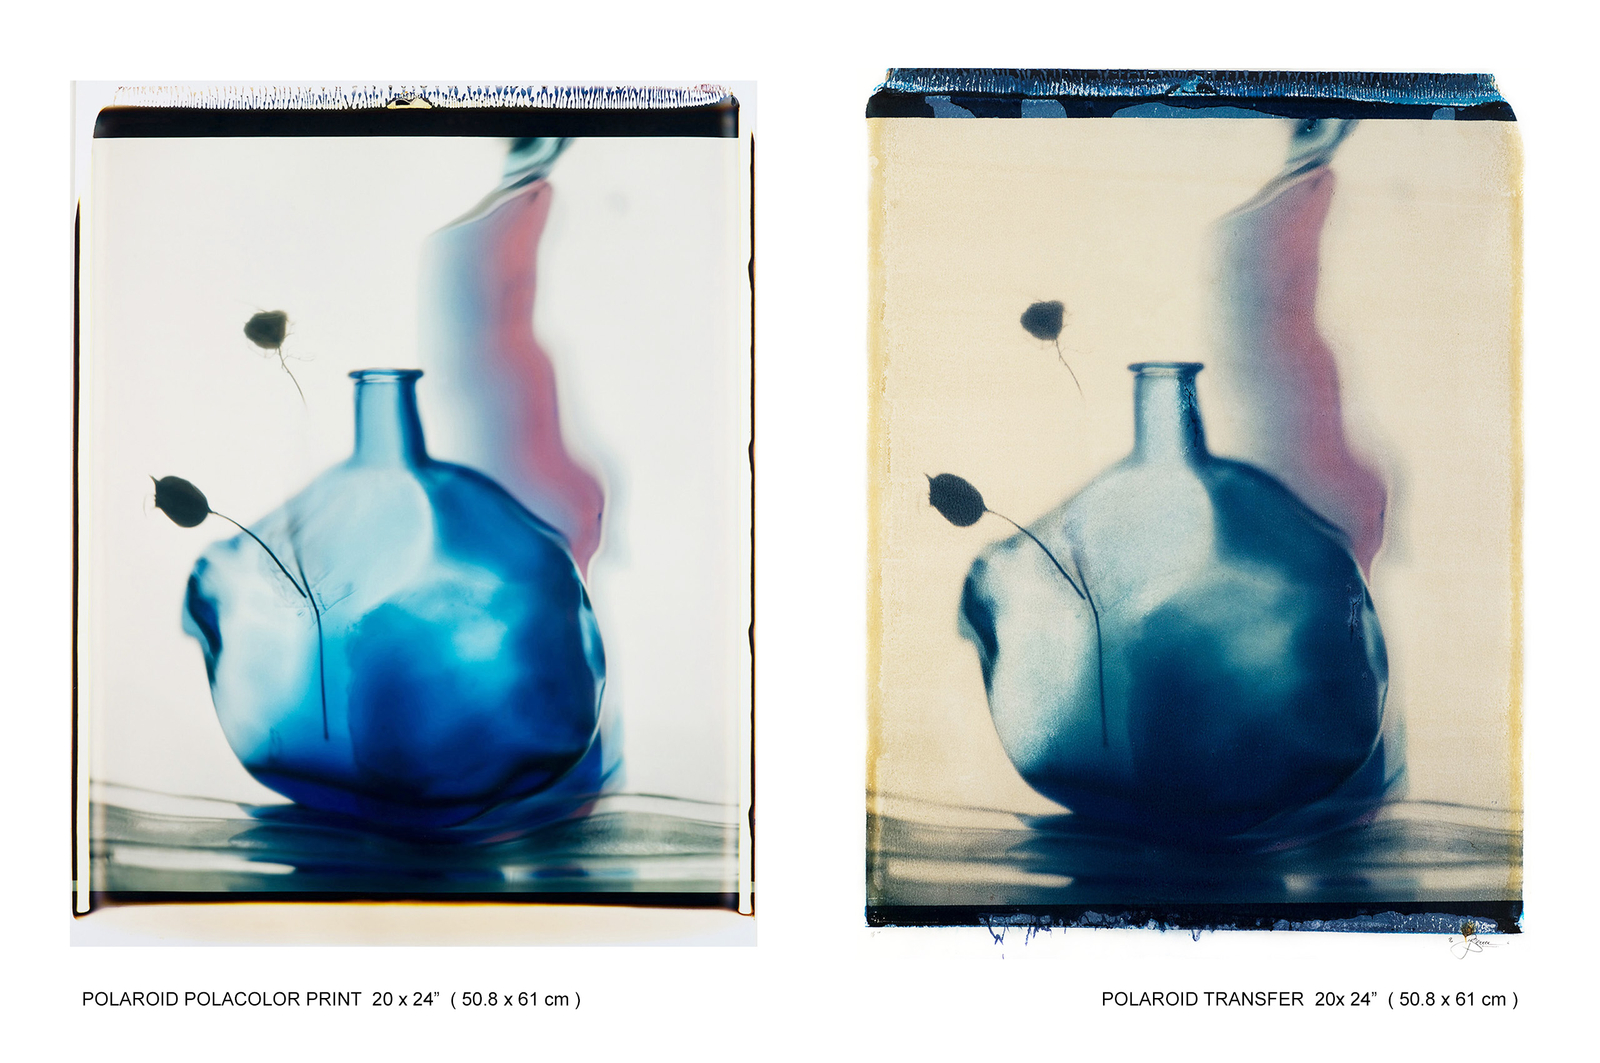 POLAROID BLUE BOTTLE DRY FLOWER DOUBLE.jpg